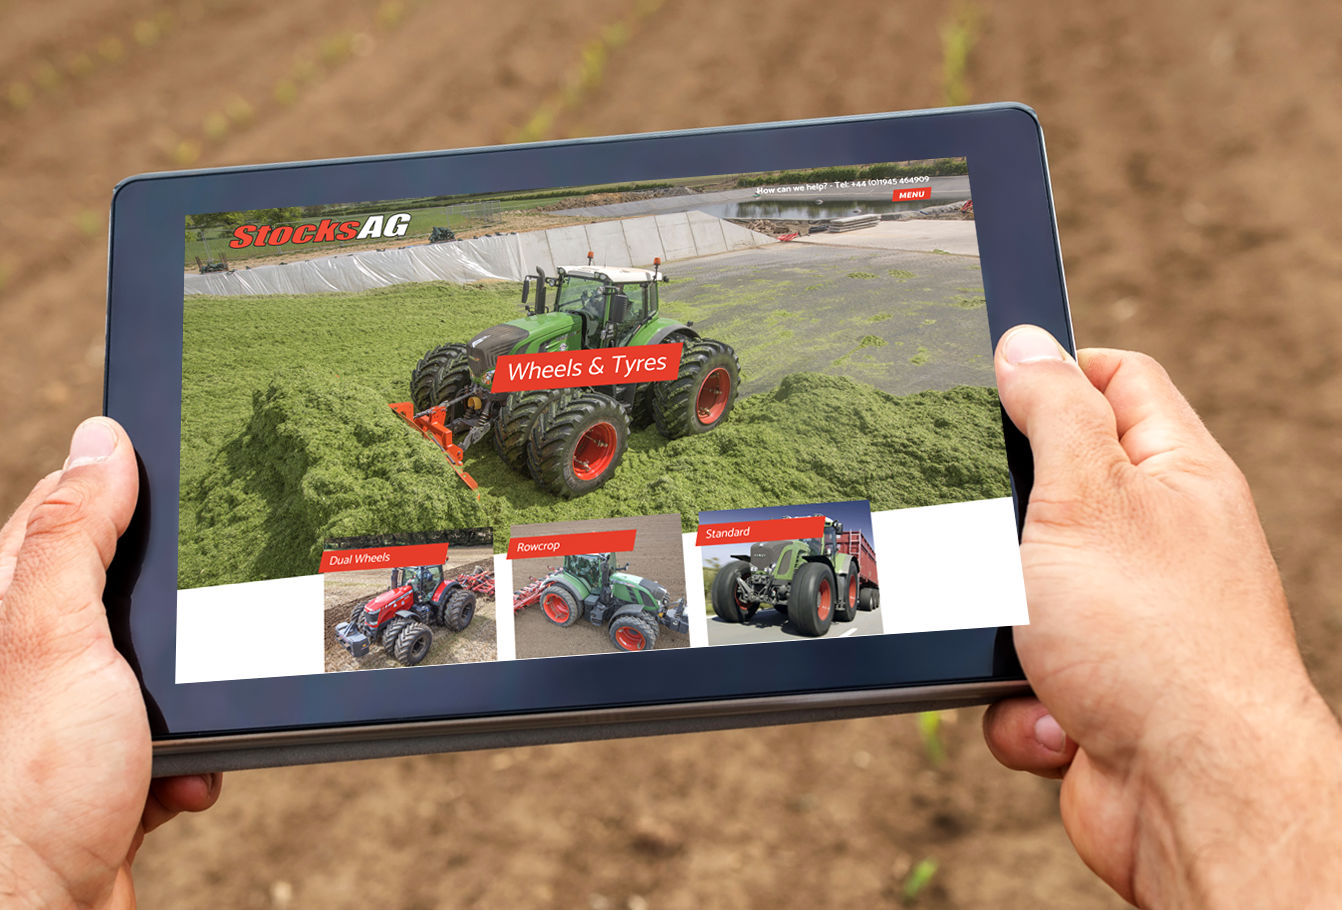 Stocks AG website on tablet